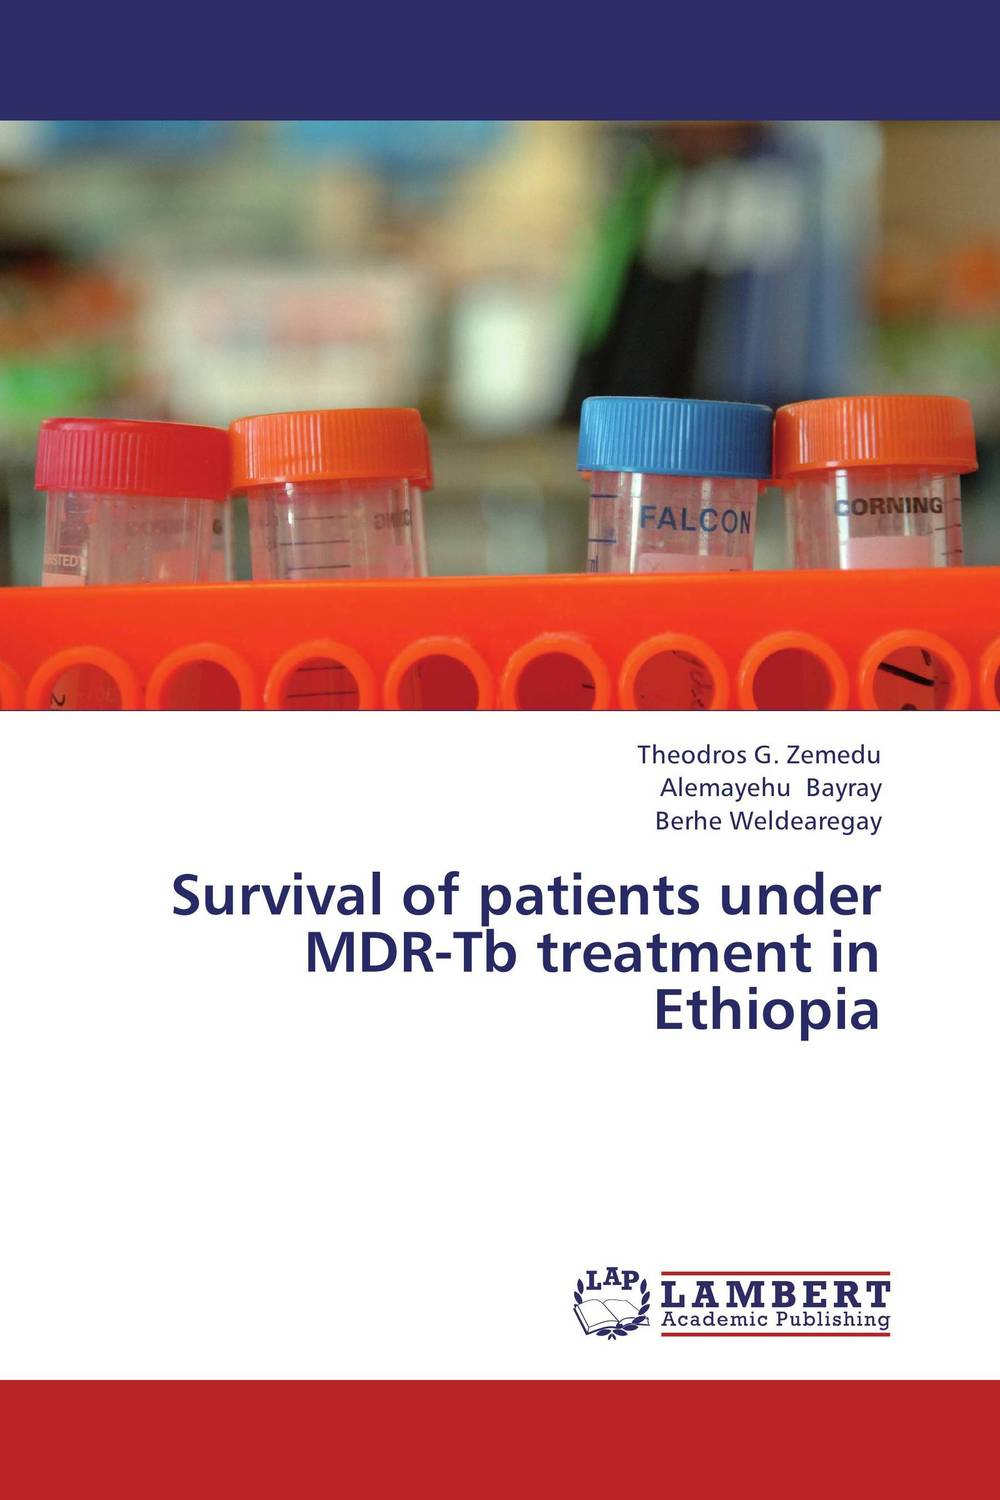 Survival of patients under MDR-Tb treatment in Ethiopia